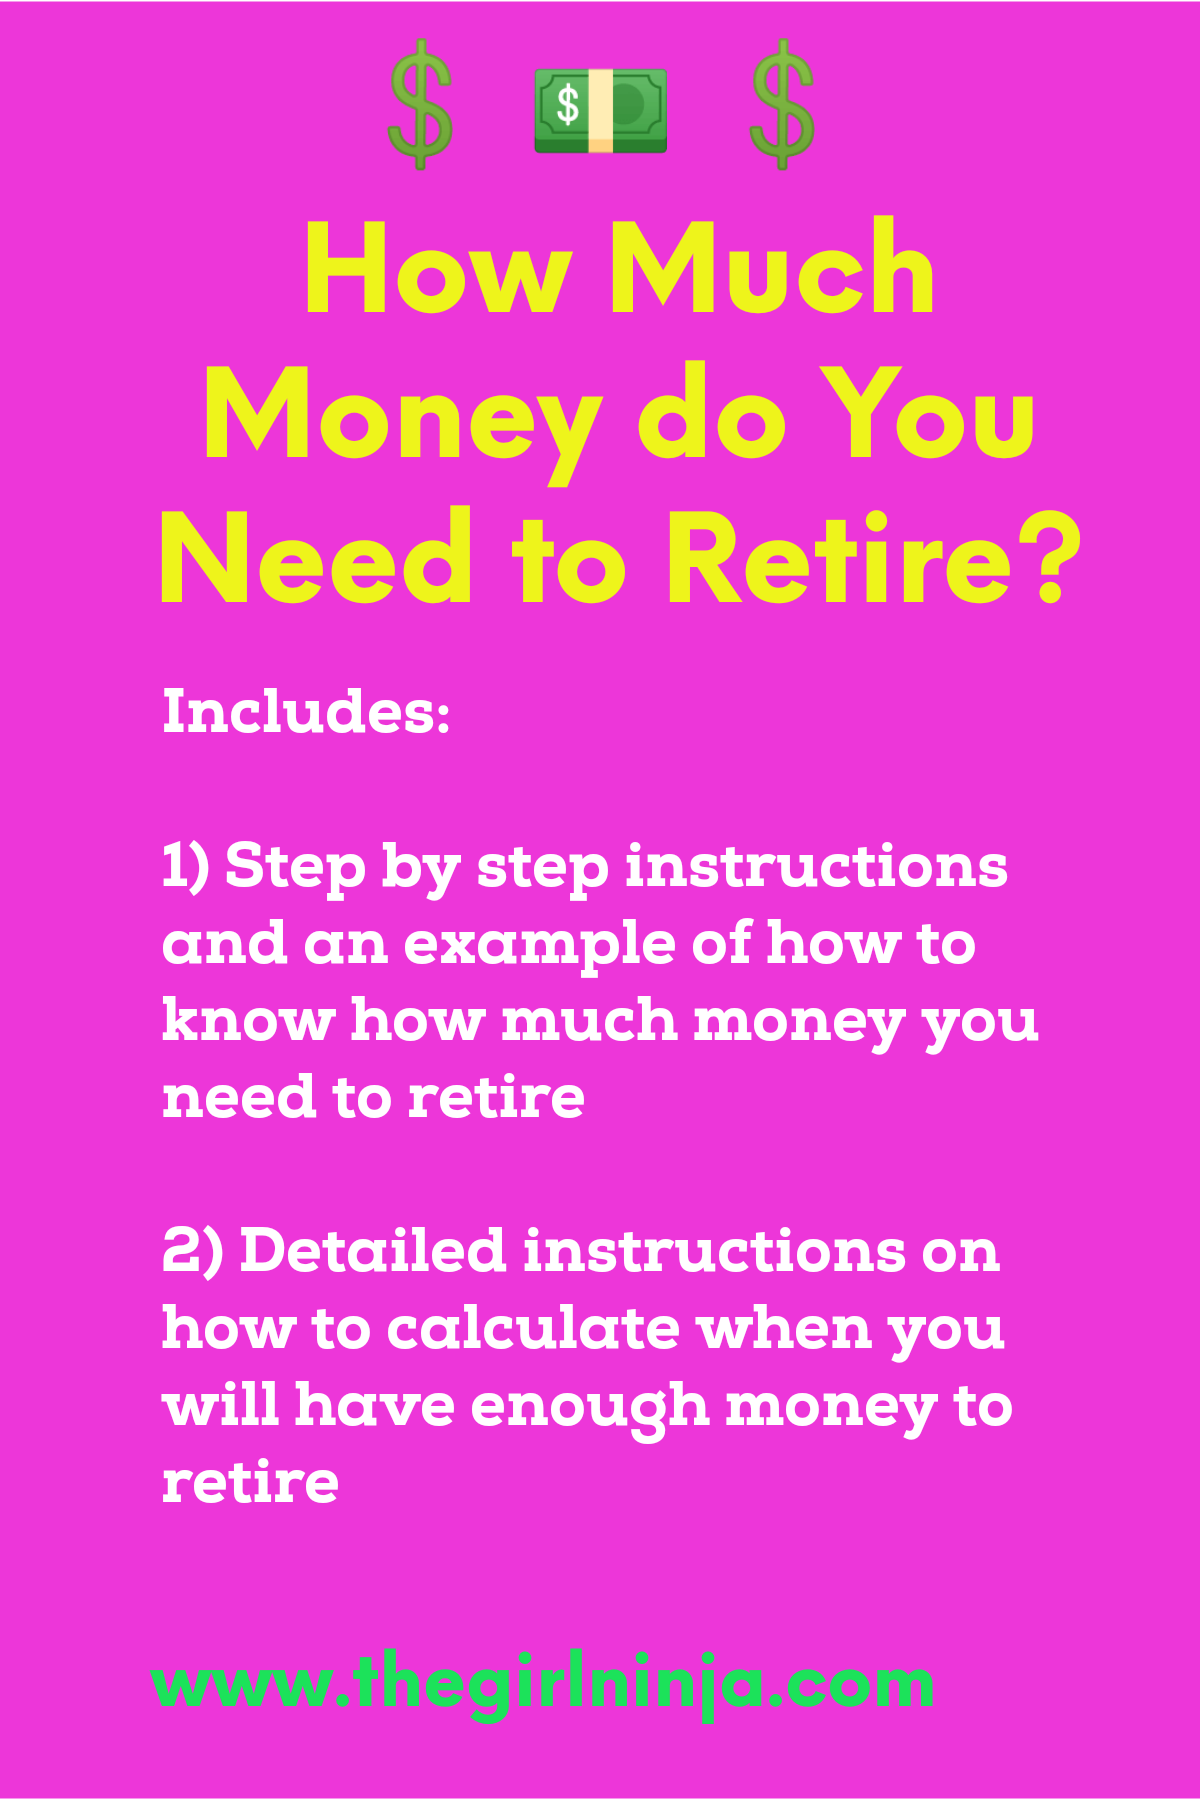 Pink rectangle with green dollar signs and stack of bills at top center. Bright yellow text reads How Much Money do You Need to Retire? White text reads Includes:  1) Step by step instructions and an example of how to know how much money you need to retire   2) Detailed instructions on how to calculate when you will have enough money to retire   At bottom center green text reads www.thegirlninja.com